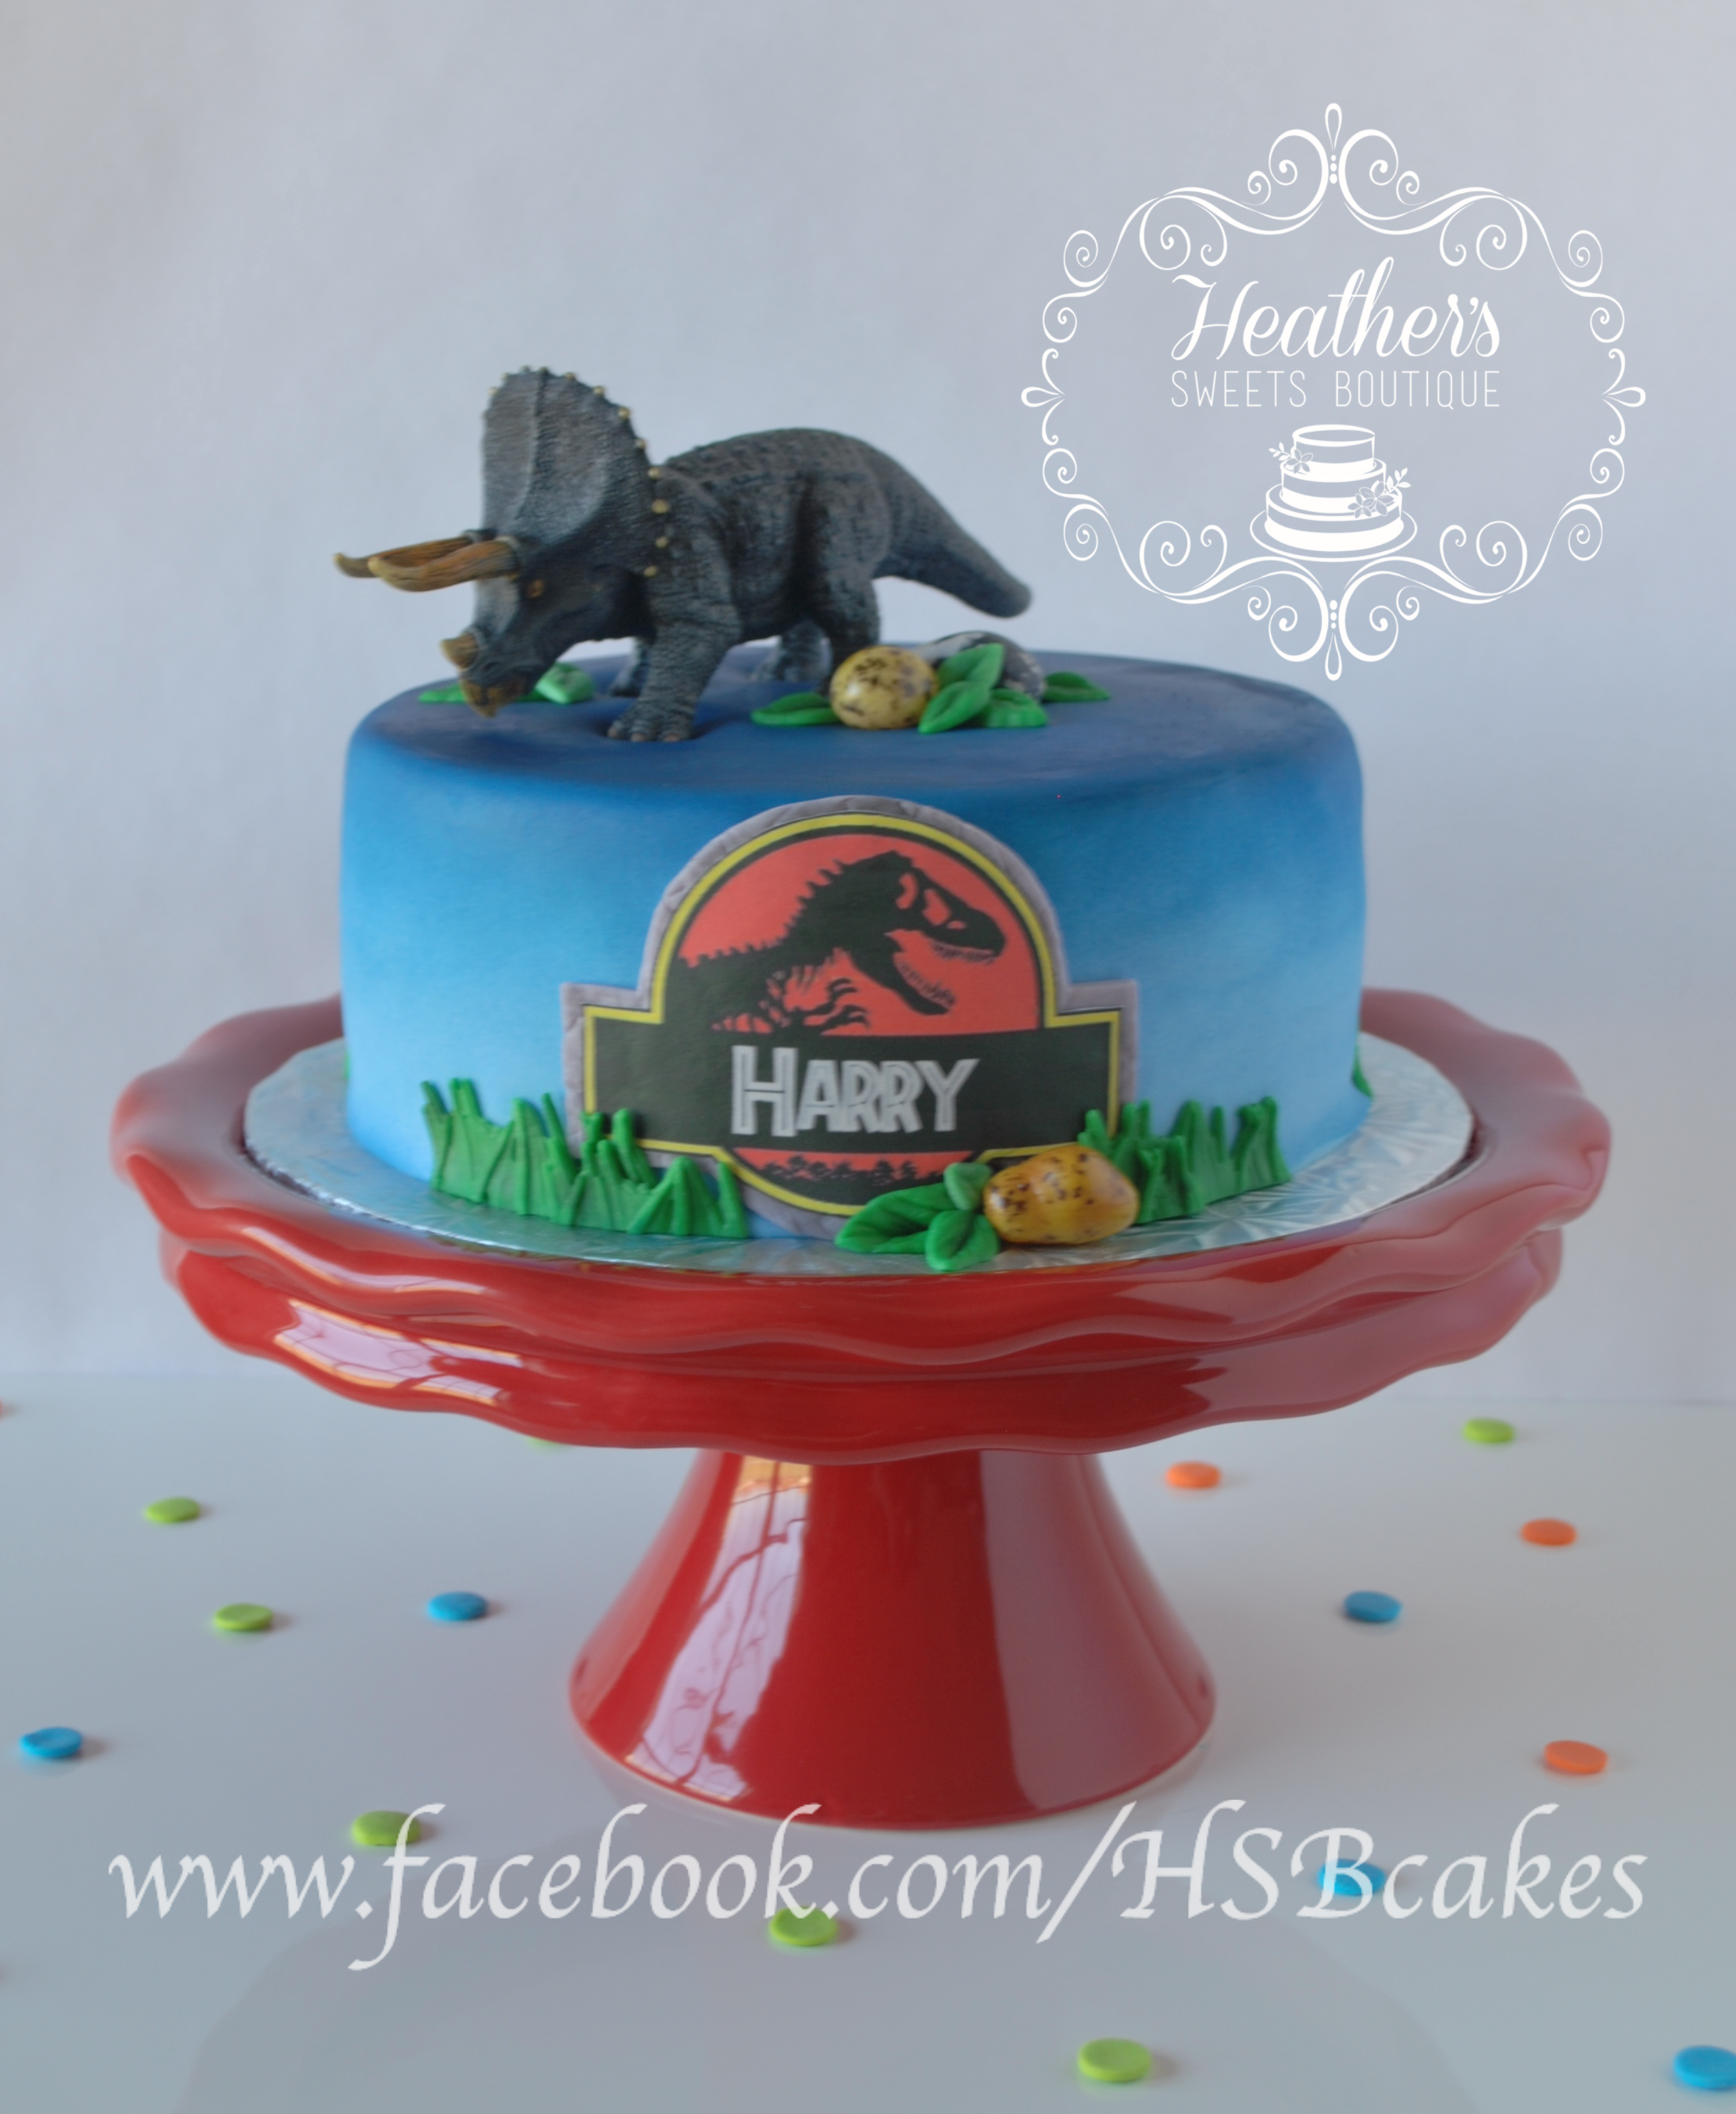 Jurassic Park Cake Heathers Sweets Boutique Facebook